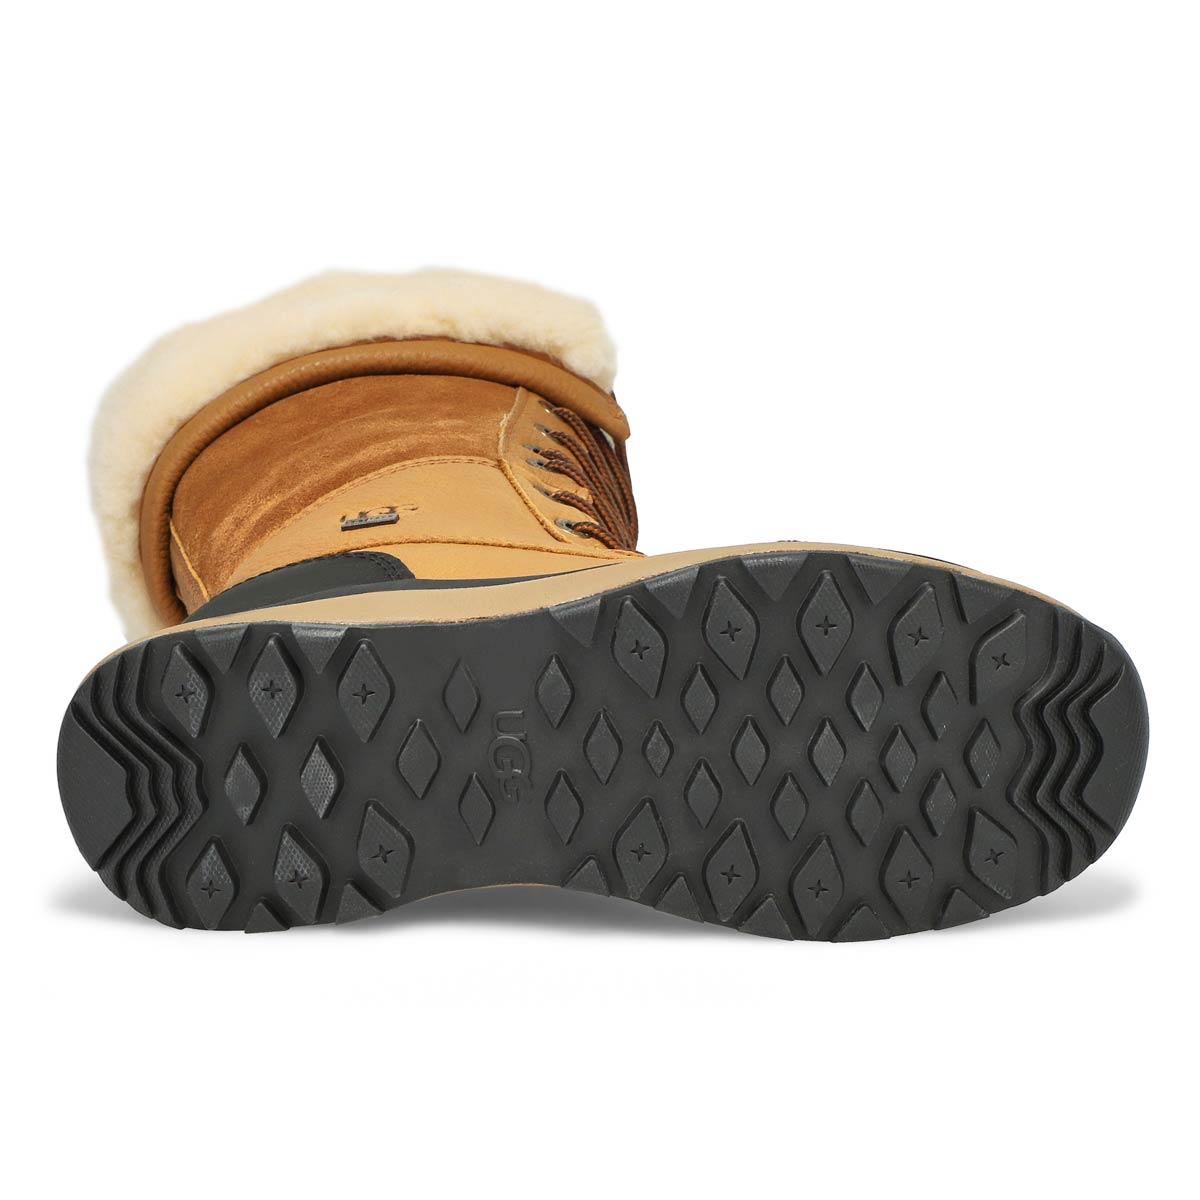 Lds AdirondackTall III ches winter boot